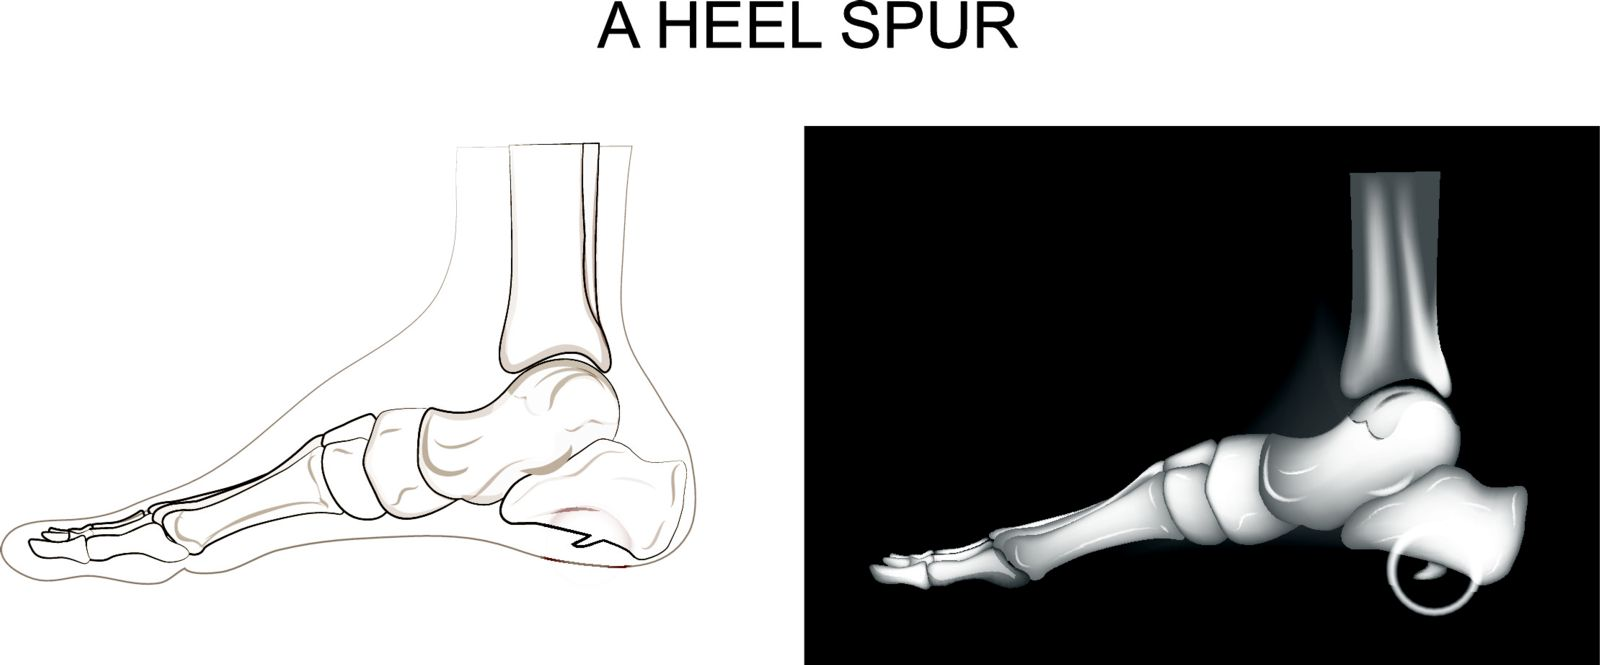 Plantar fasciitis often involves a heel spur with Houston podiatry